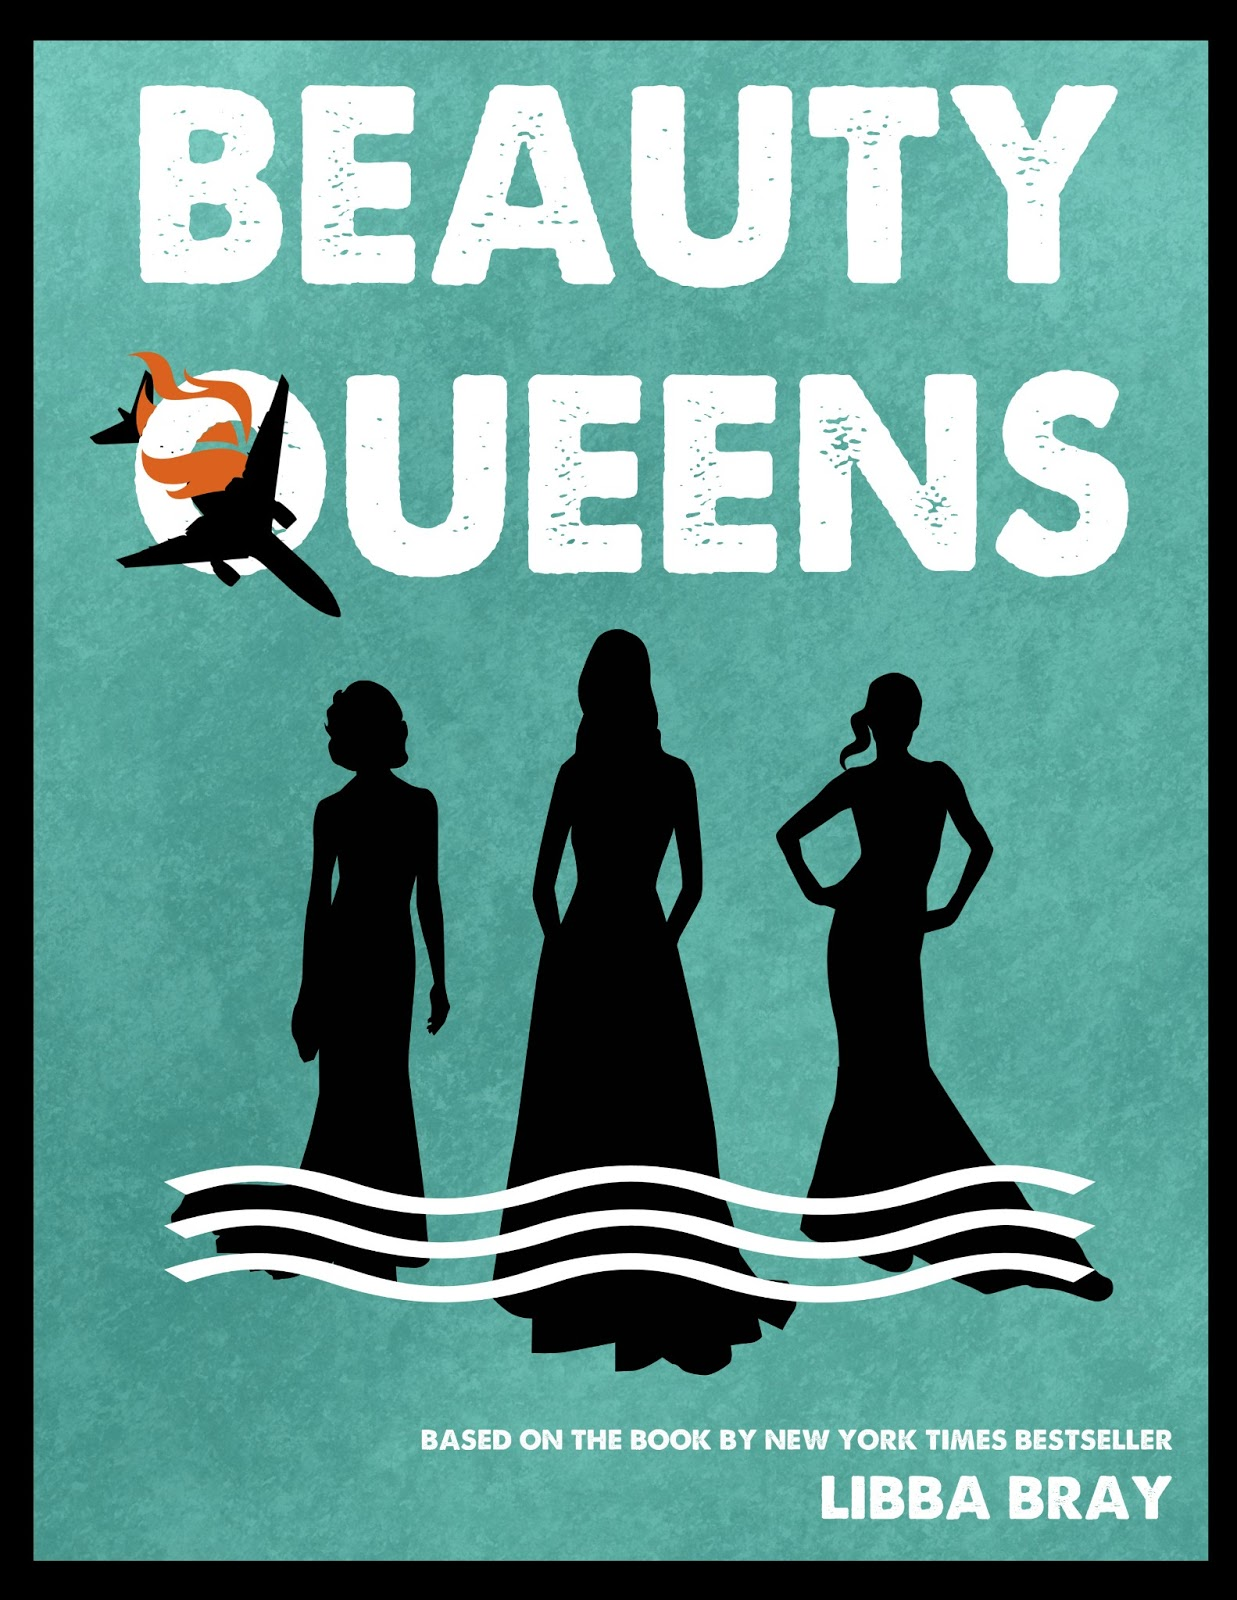 Business Book Cover Queen : Road trip wednesday on the silver screen kate hart